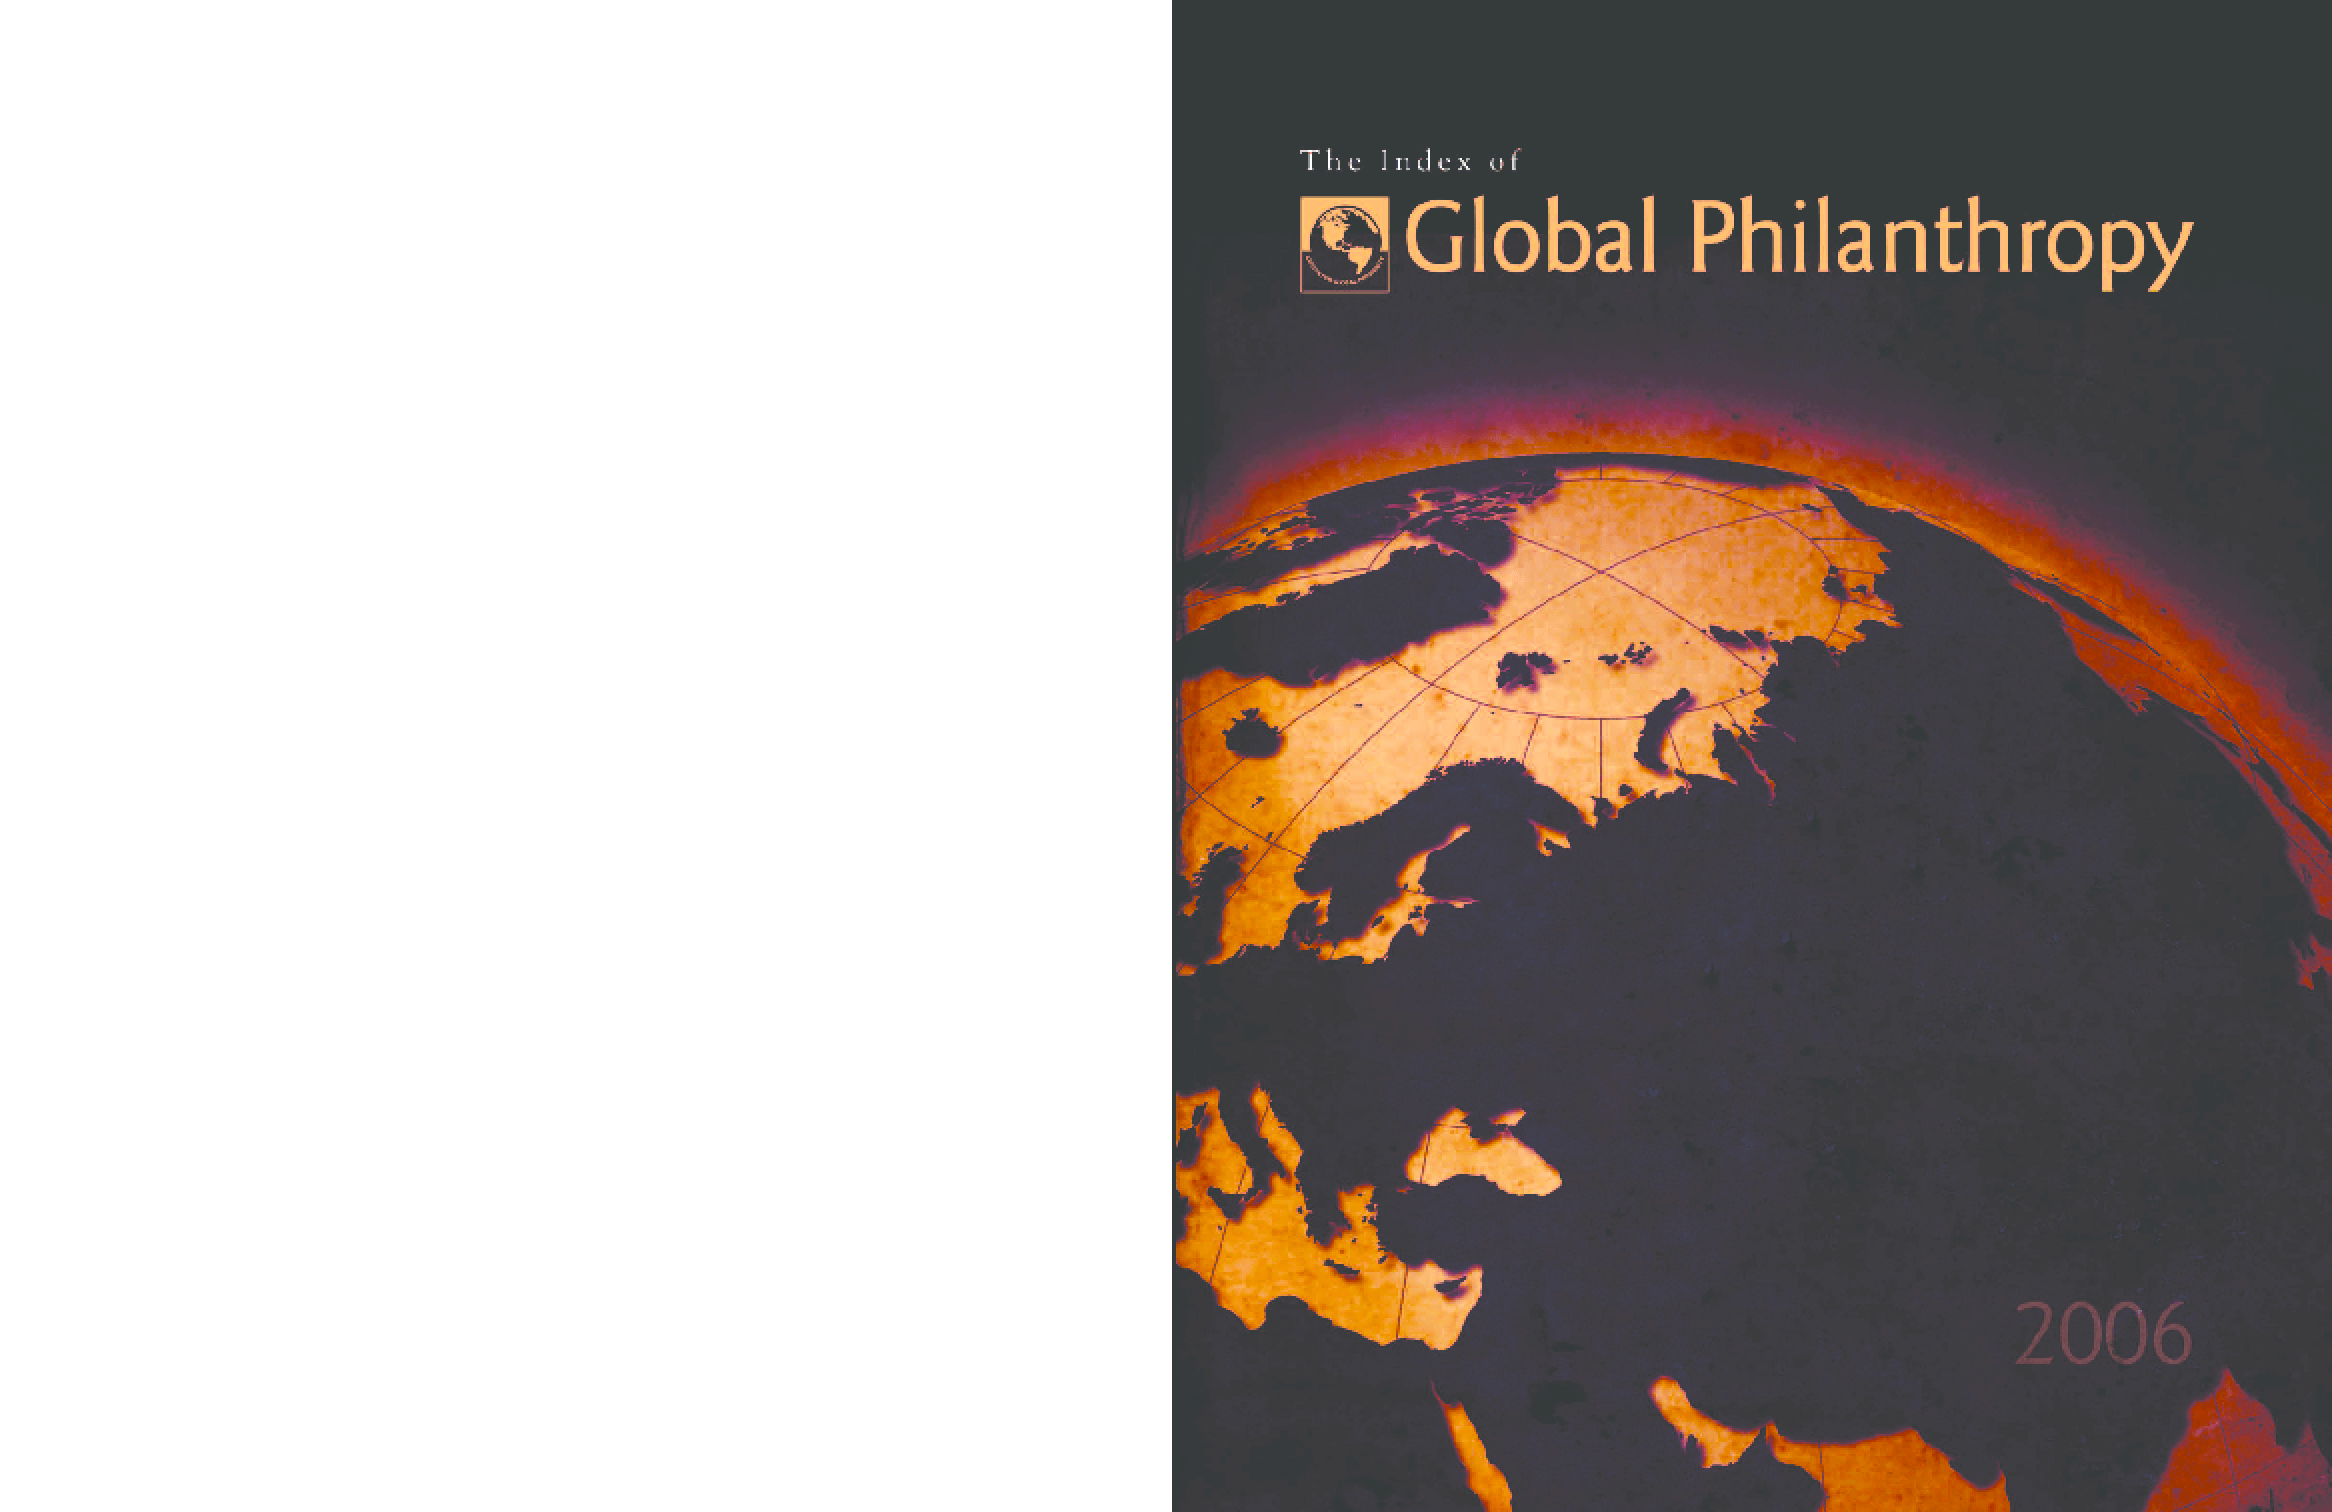 The Index of Global Philanthropy 2006